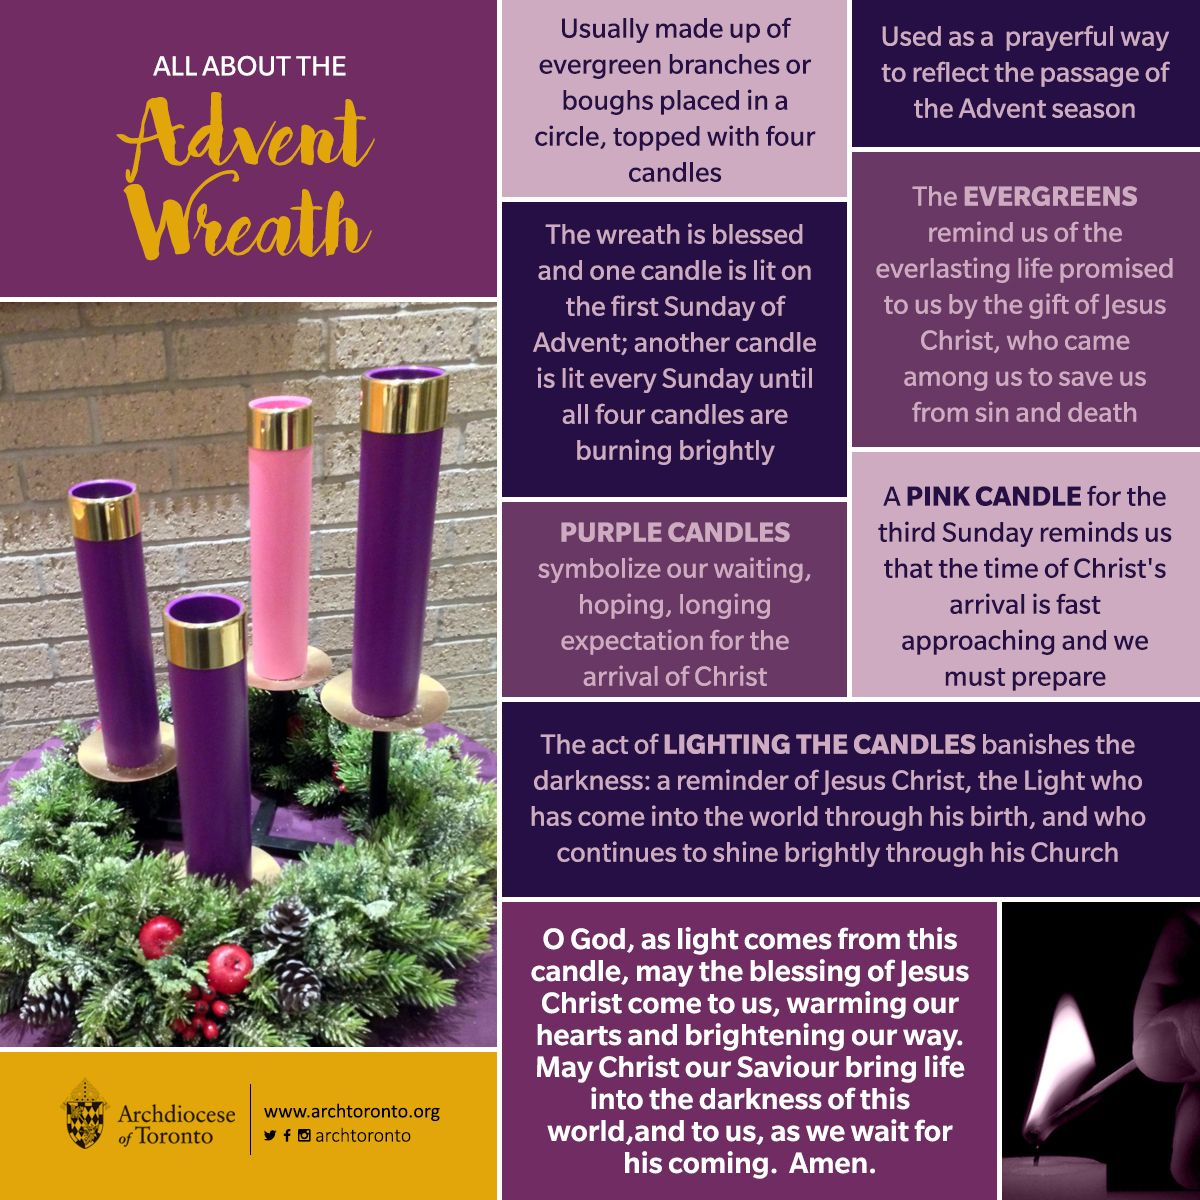 All About The Advent Wreath